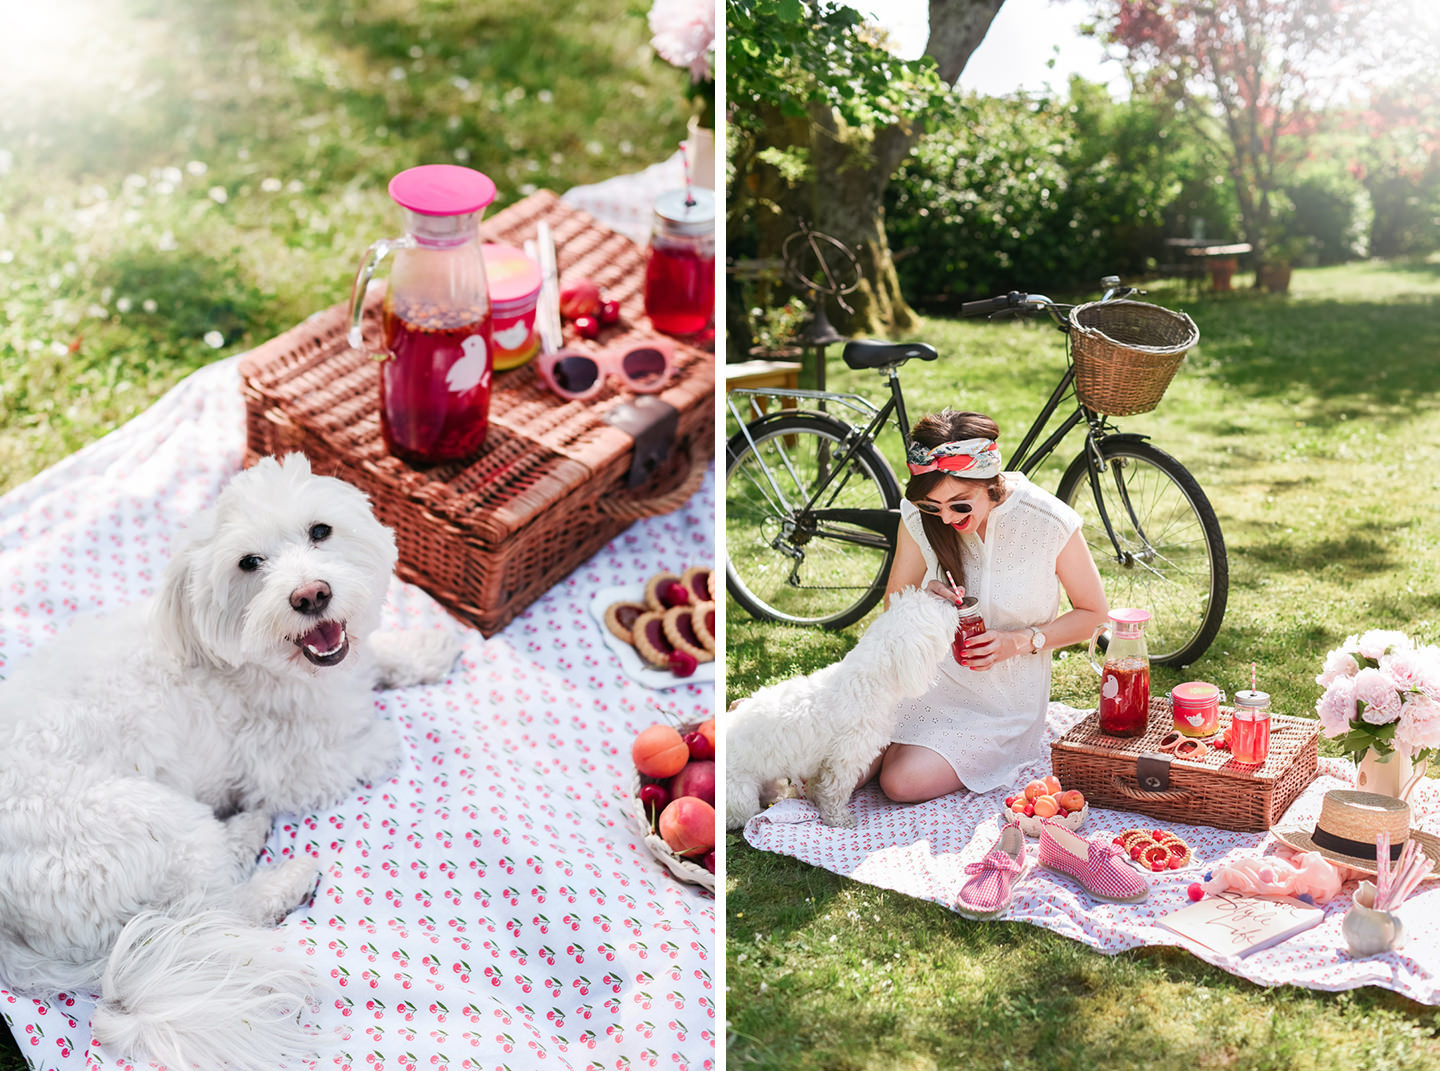 Blog-Mode-And-The-City-Lifestyle-Summer-in-Lov-Lov-Organic-montage